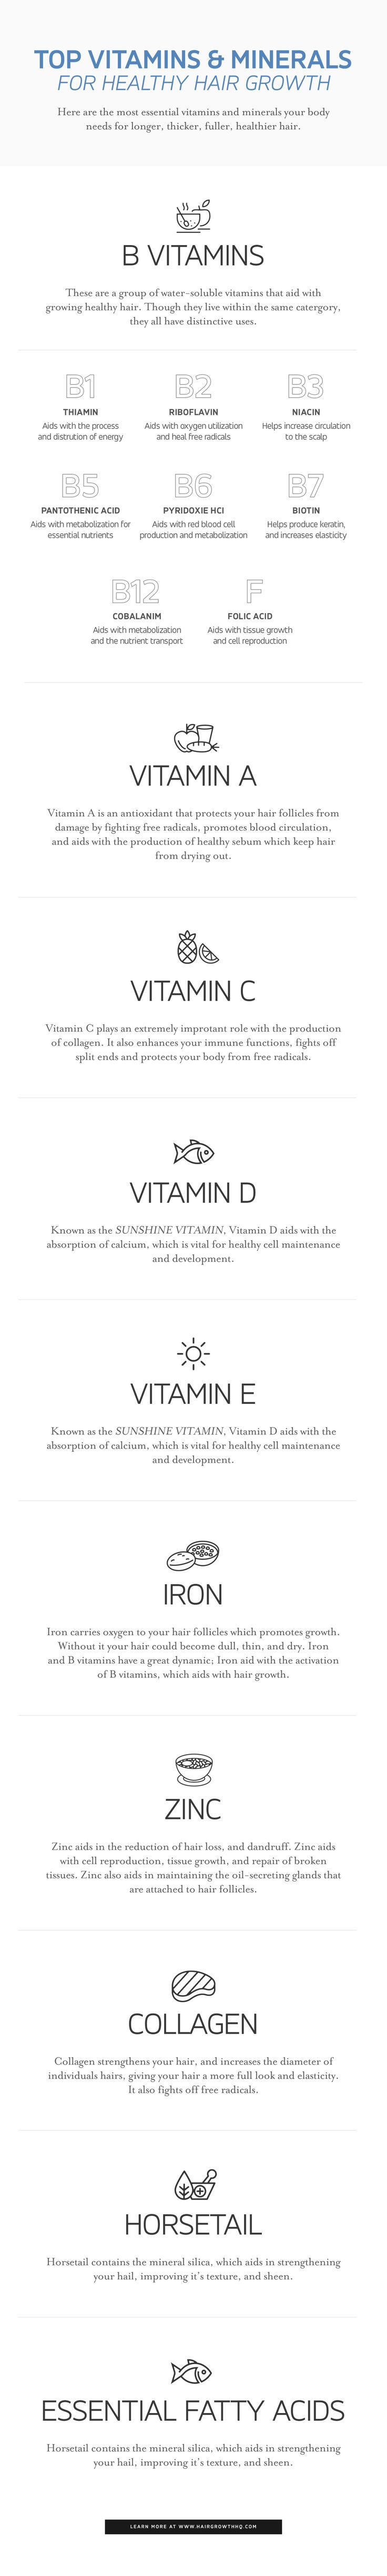 Vitamins and Minerals that aid with healthy hair growth | HairGrowthHQ